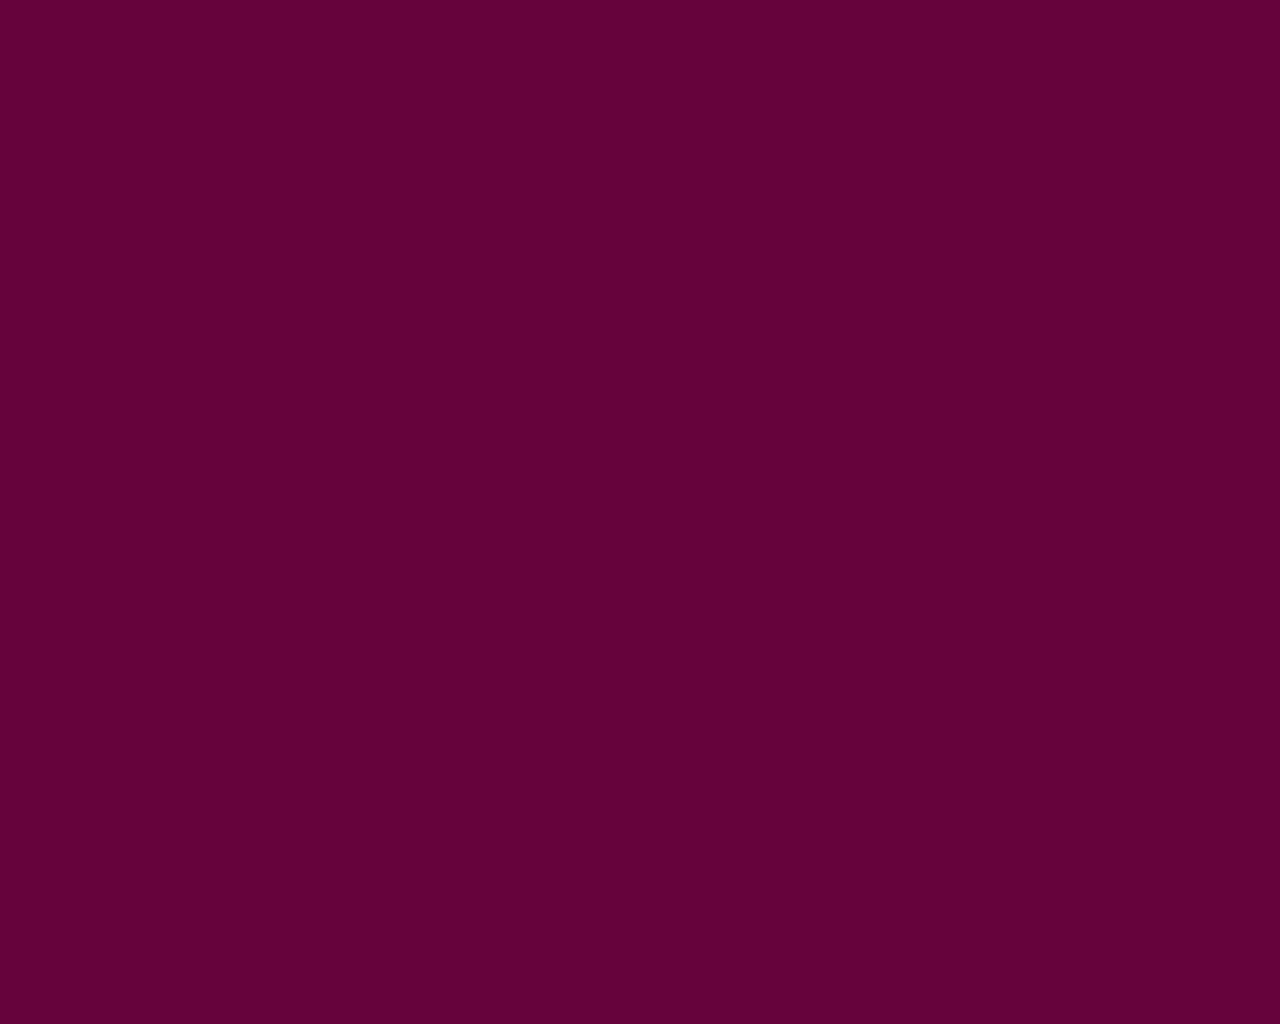 1280x1024 Tyrian Purple Solid Color Background